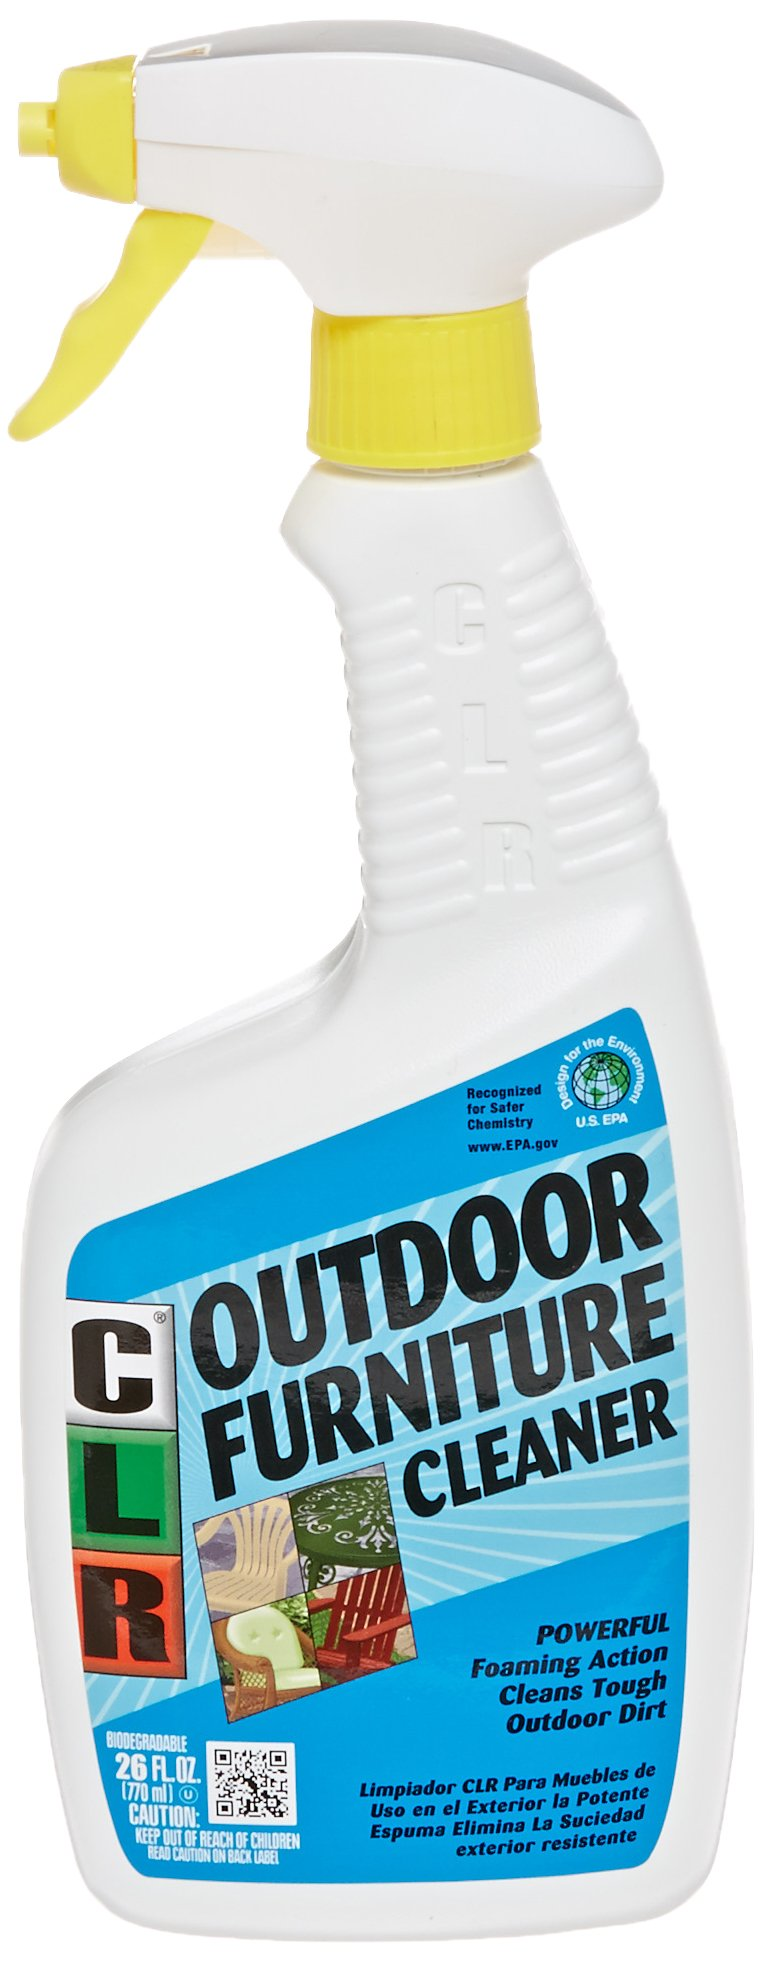 Product features for Outdoor furniture cleaner